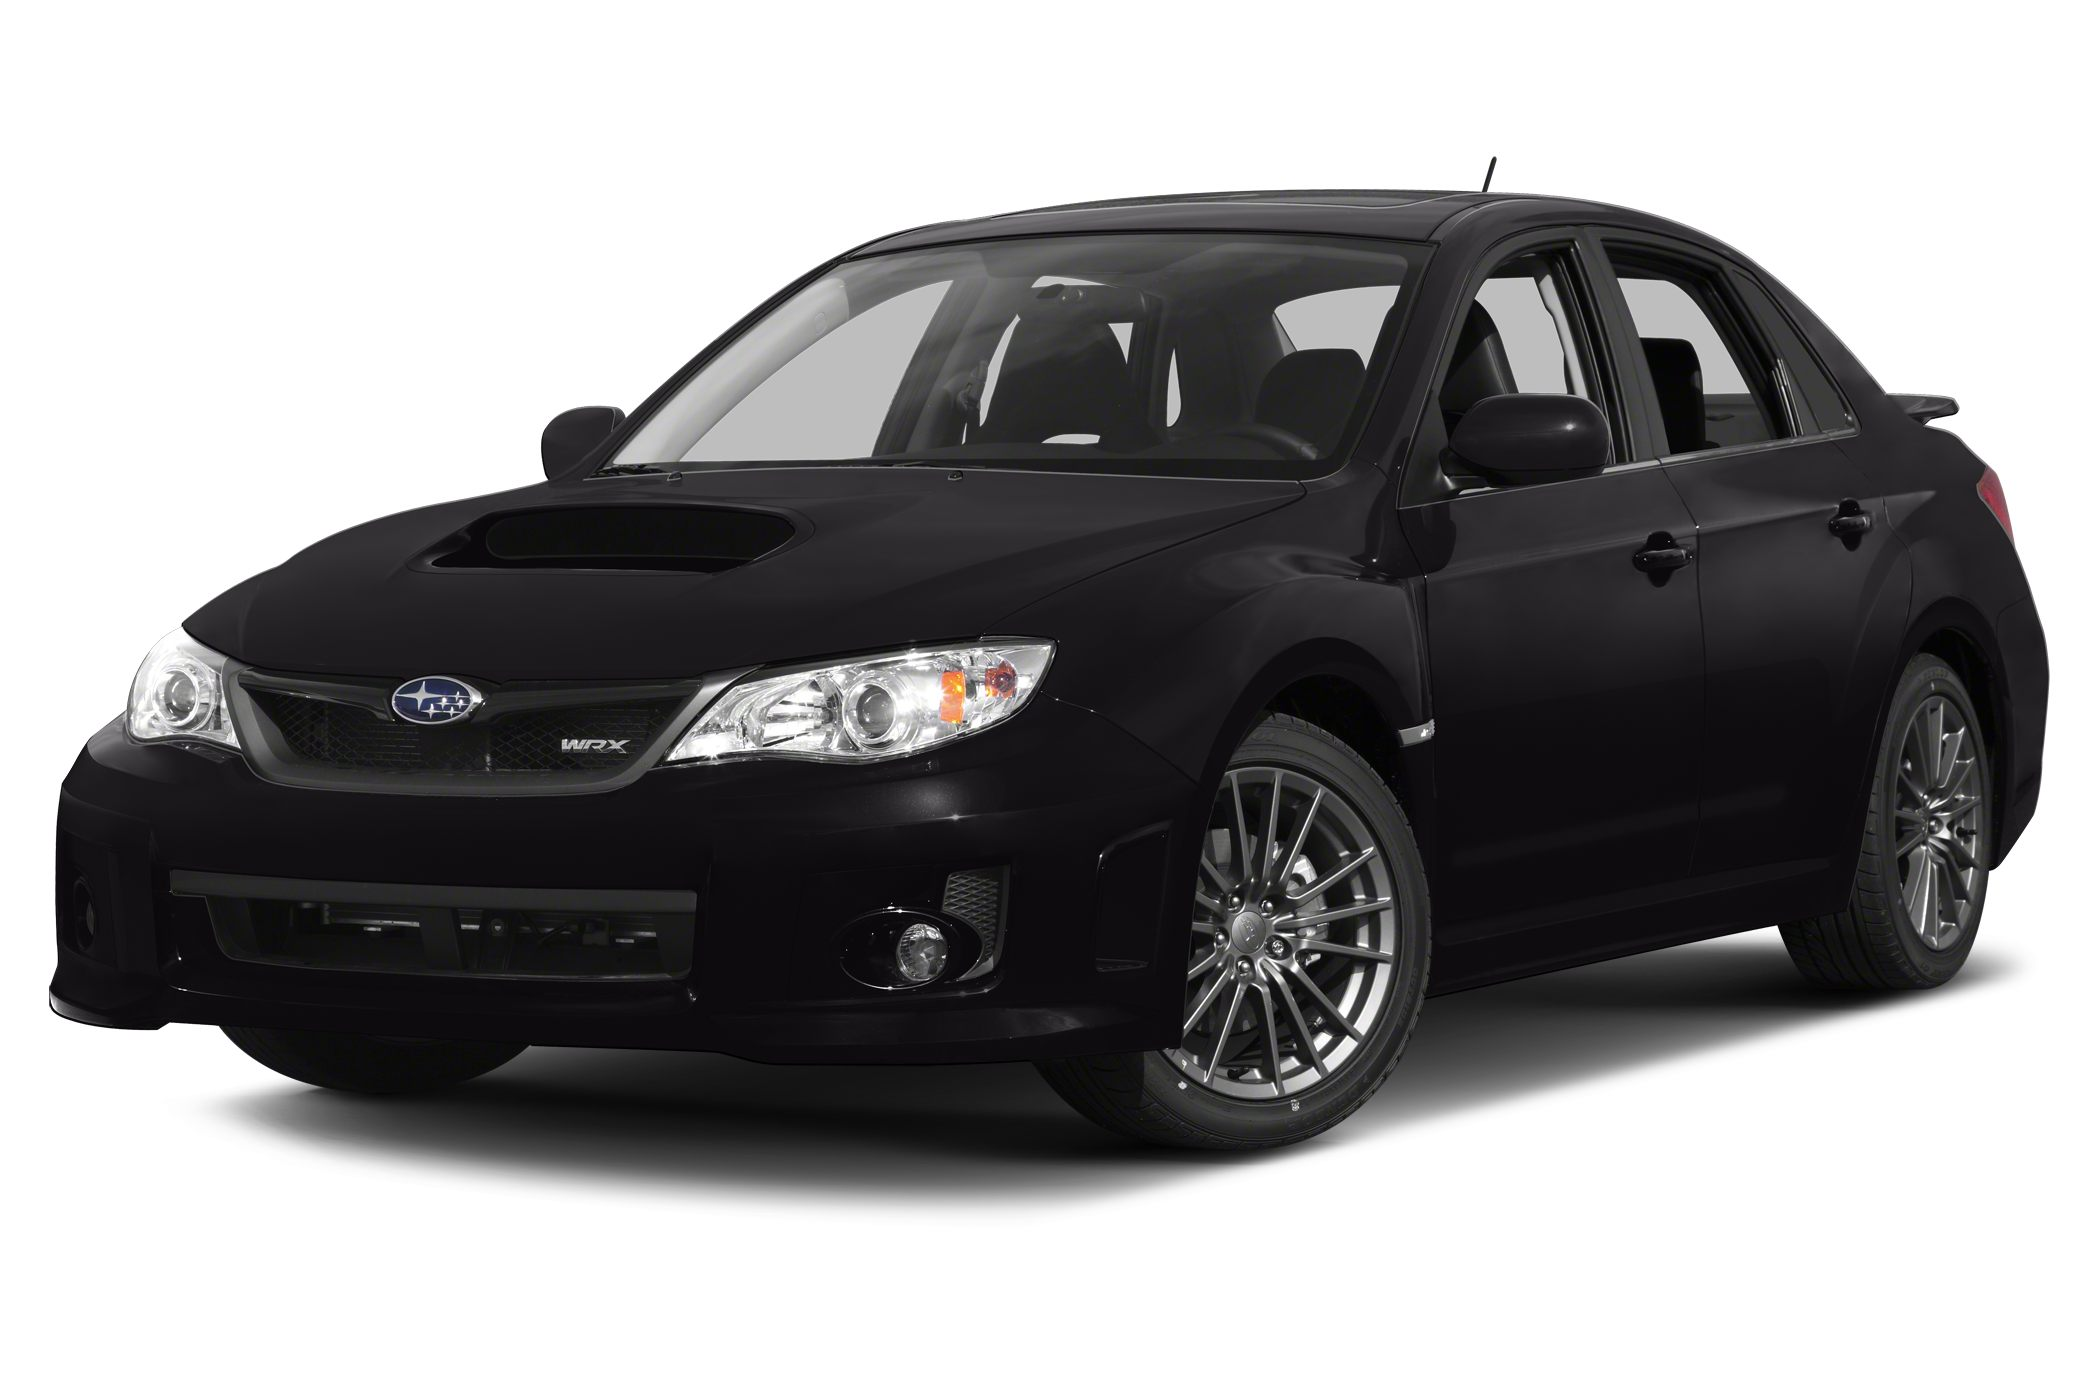 2013 Subaru Impreza WRX Base Hatchback for sale in Tacoma for $29,999 with 23,704 miles